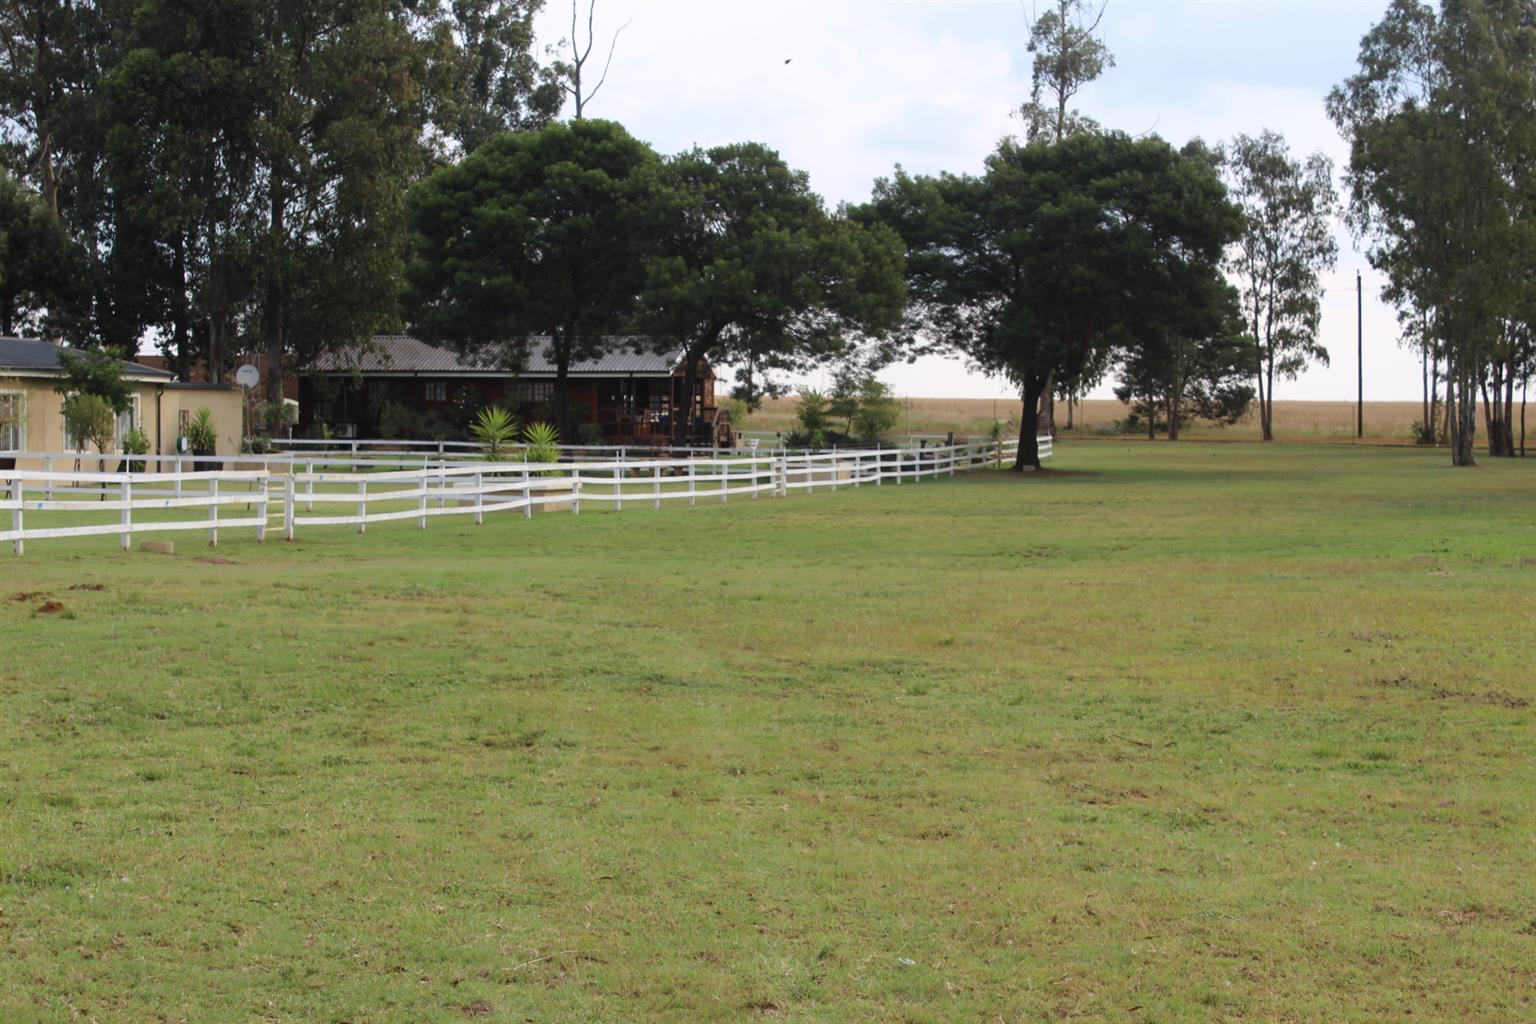 BAPSFONTEIN-A RESIDEENECE FIT FOR A KING-2.9 Ha-VERYU MODERN HOME-3 X 2 BED COTTAGES &2 LOG CABINS @ R7,500 EACH P.M.